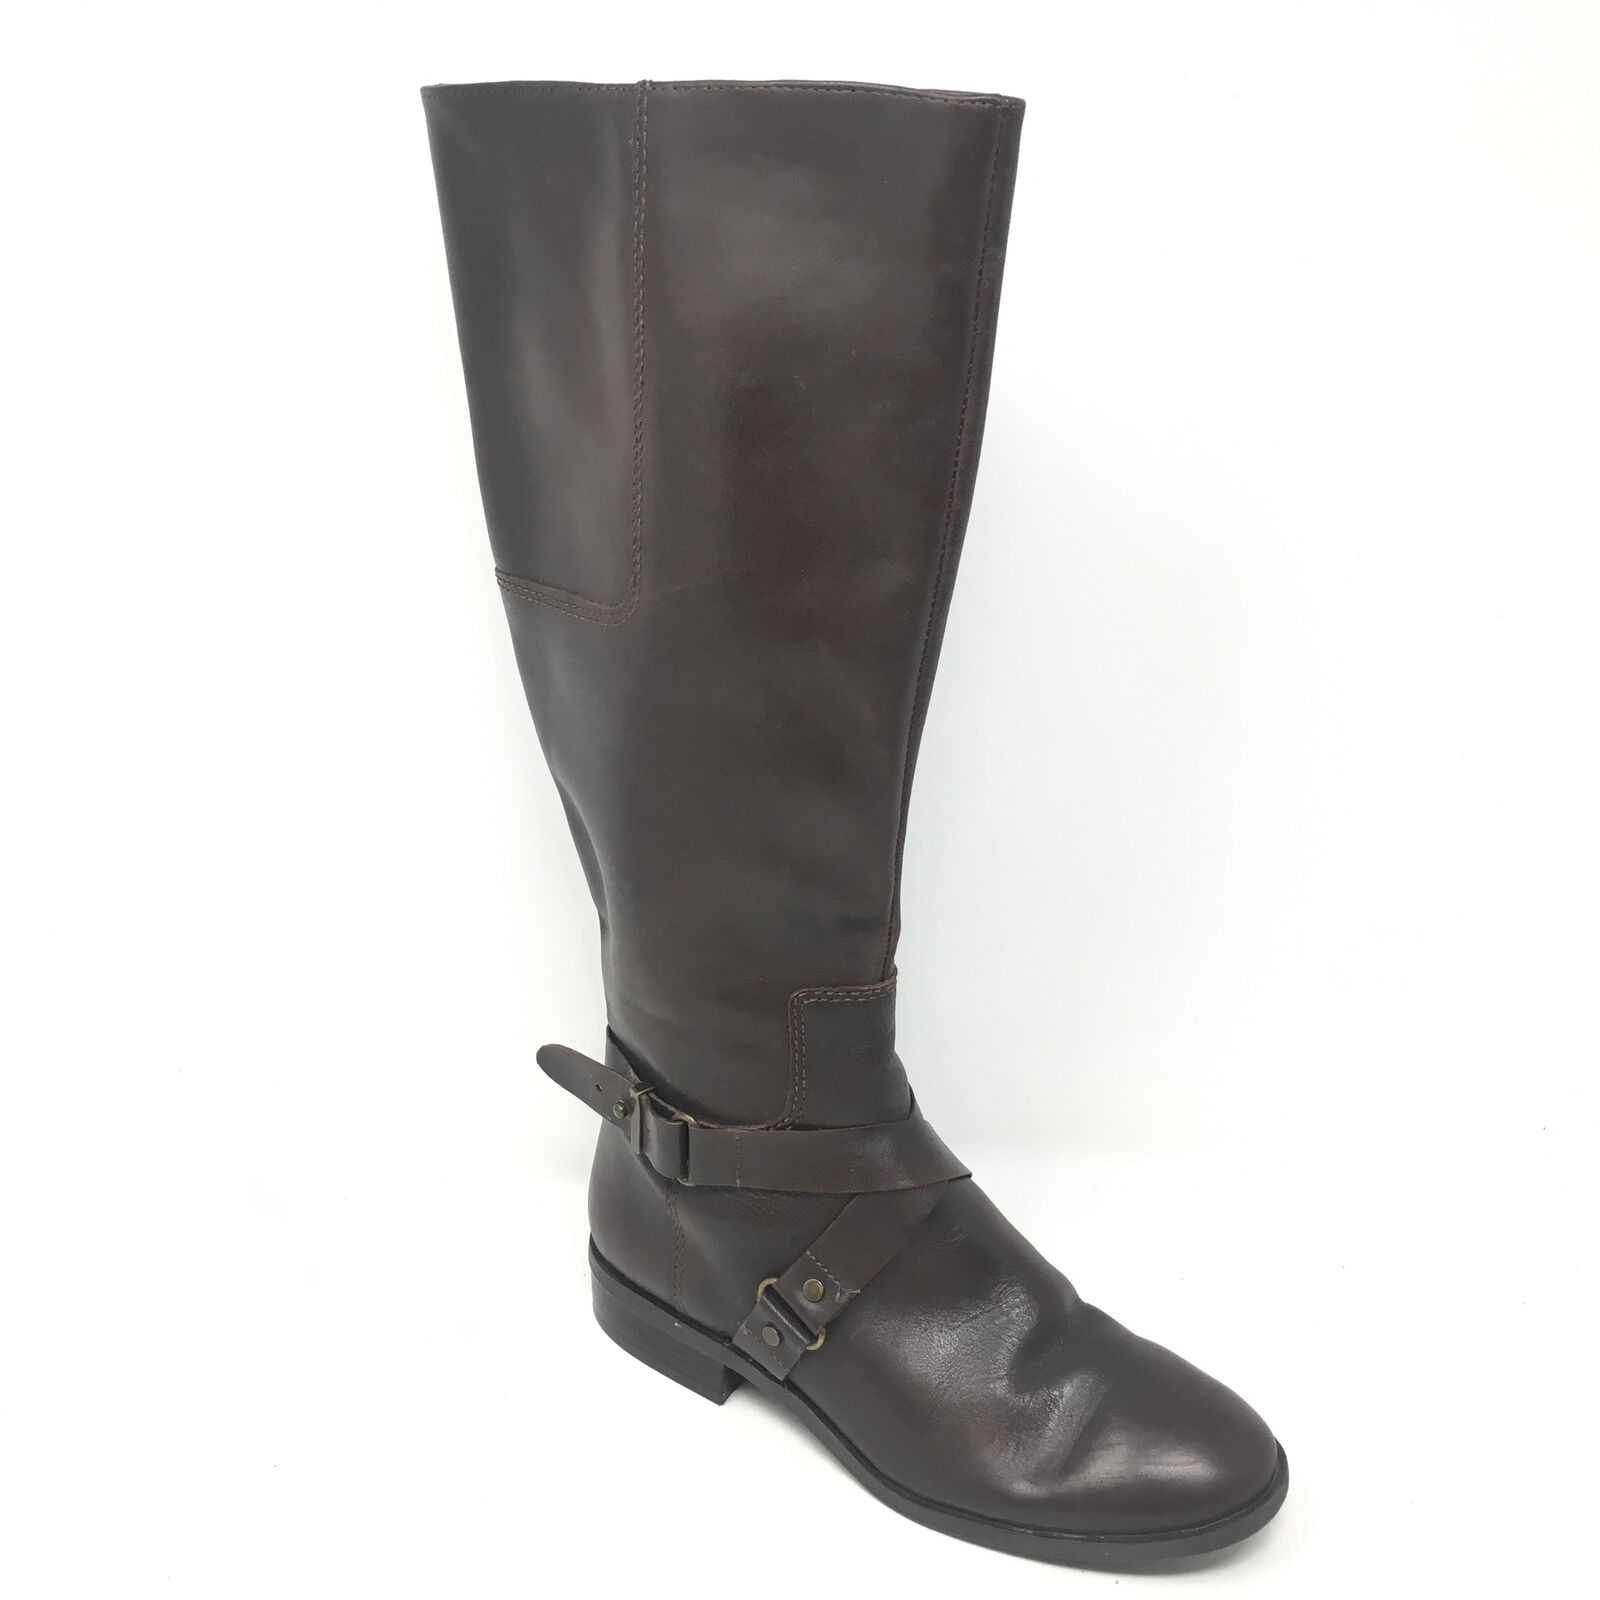 Women's Nine West Bloggr Knee High Boots shoes Size 5.5M Brown Leather Zip Up C14